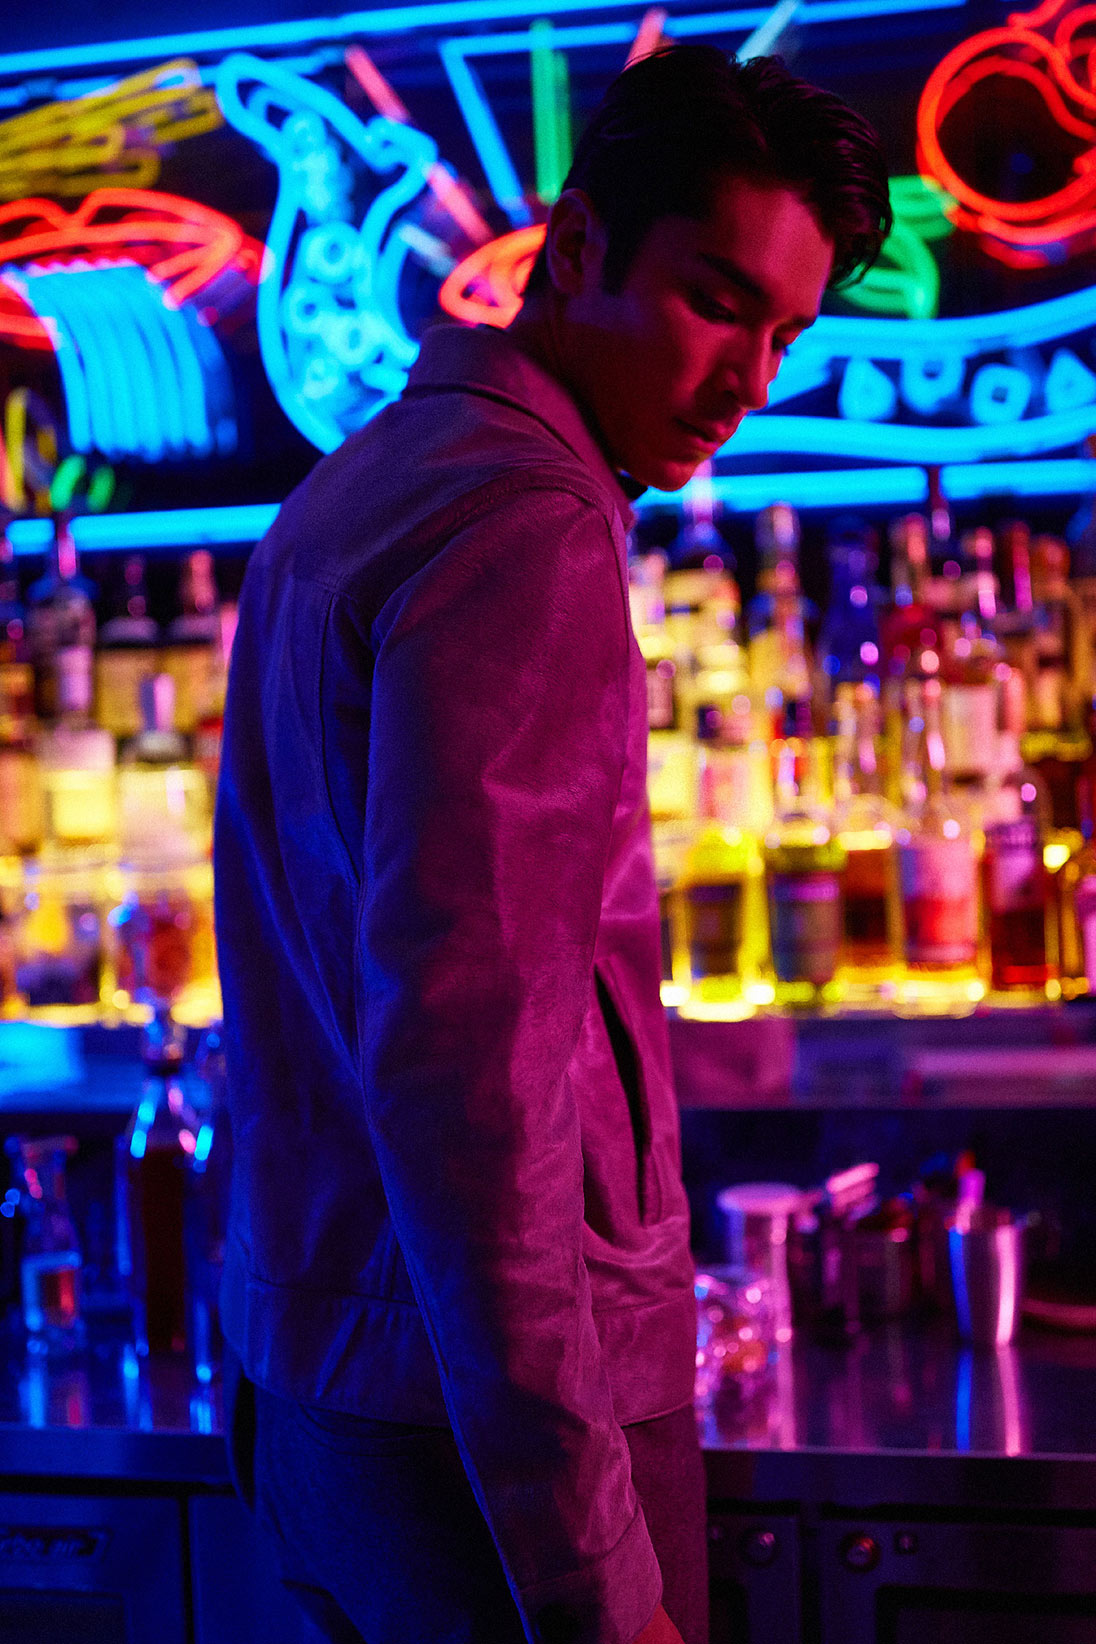 A model stands at a neon-lit bar wearing Salvatore Ferragamo and Hermès